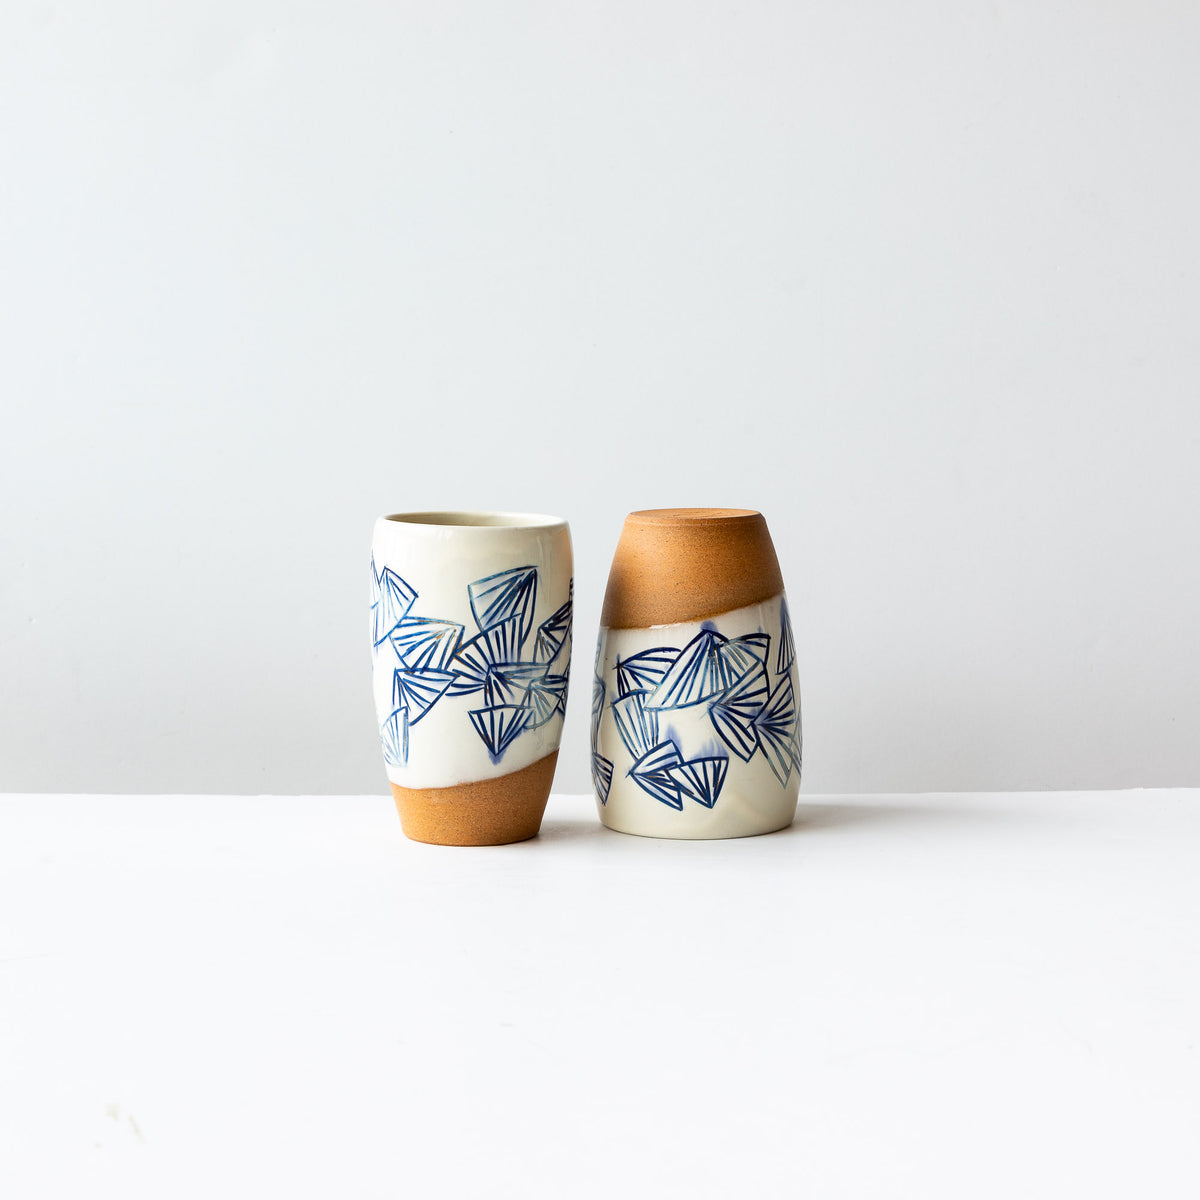 Two Handmade Mishima Stoneware Glassses With Blue Folding Fan Pattern - Sold by Chic & Basta